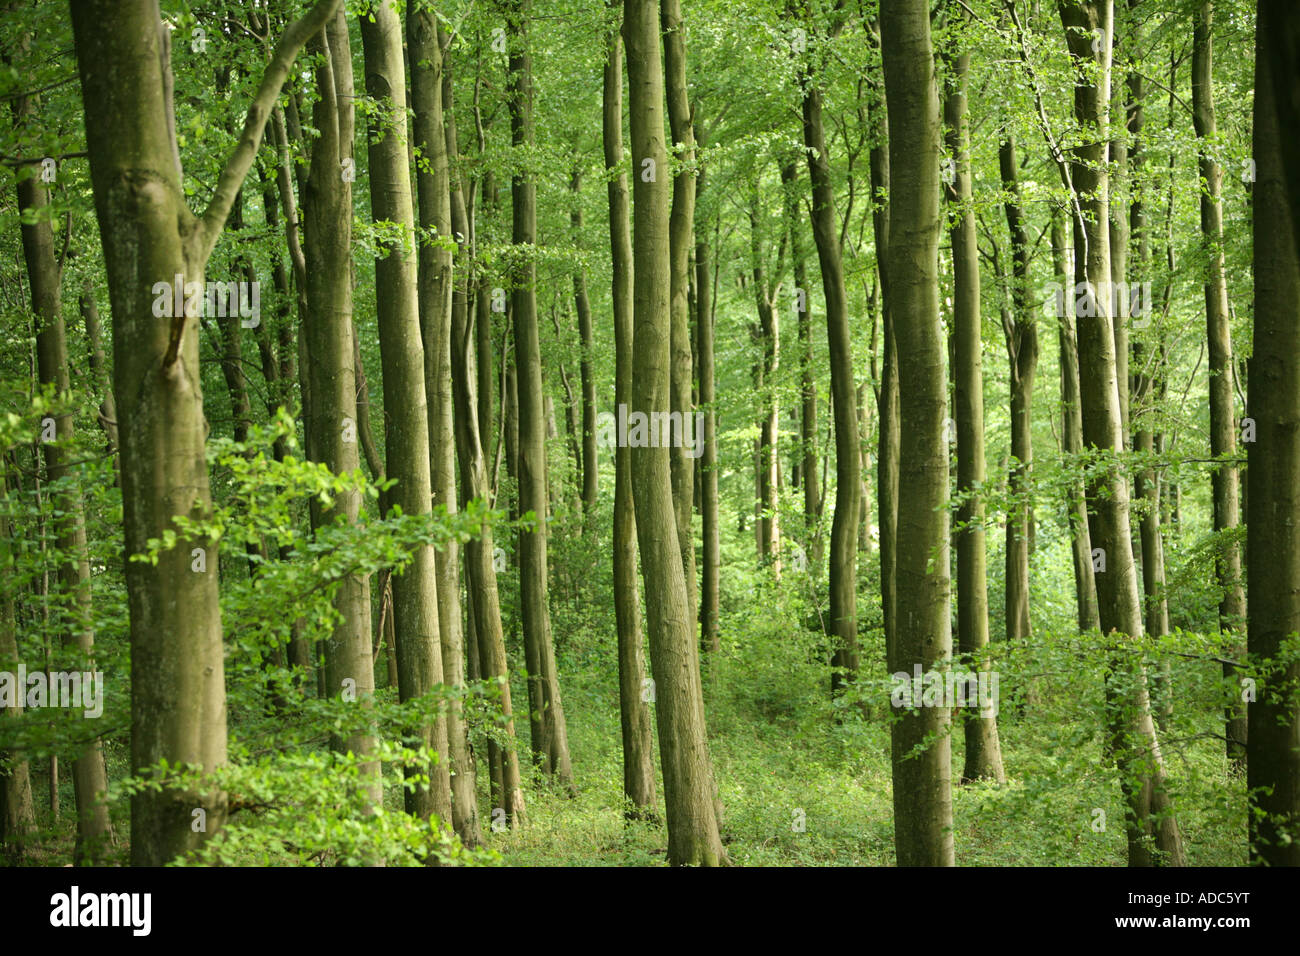 Trees in a green forrest verdent lush english woodland - Stock Image